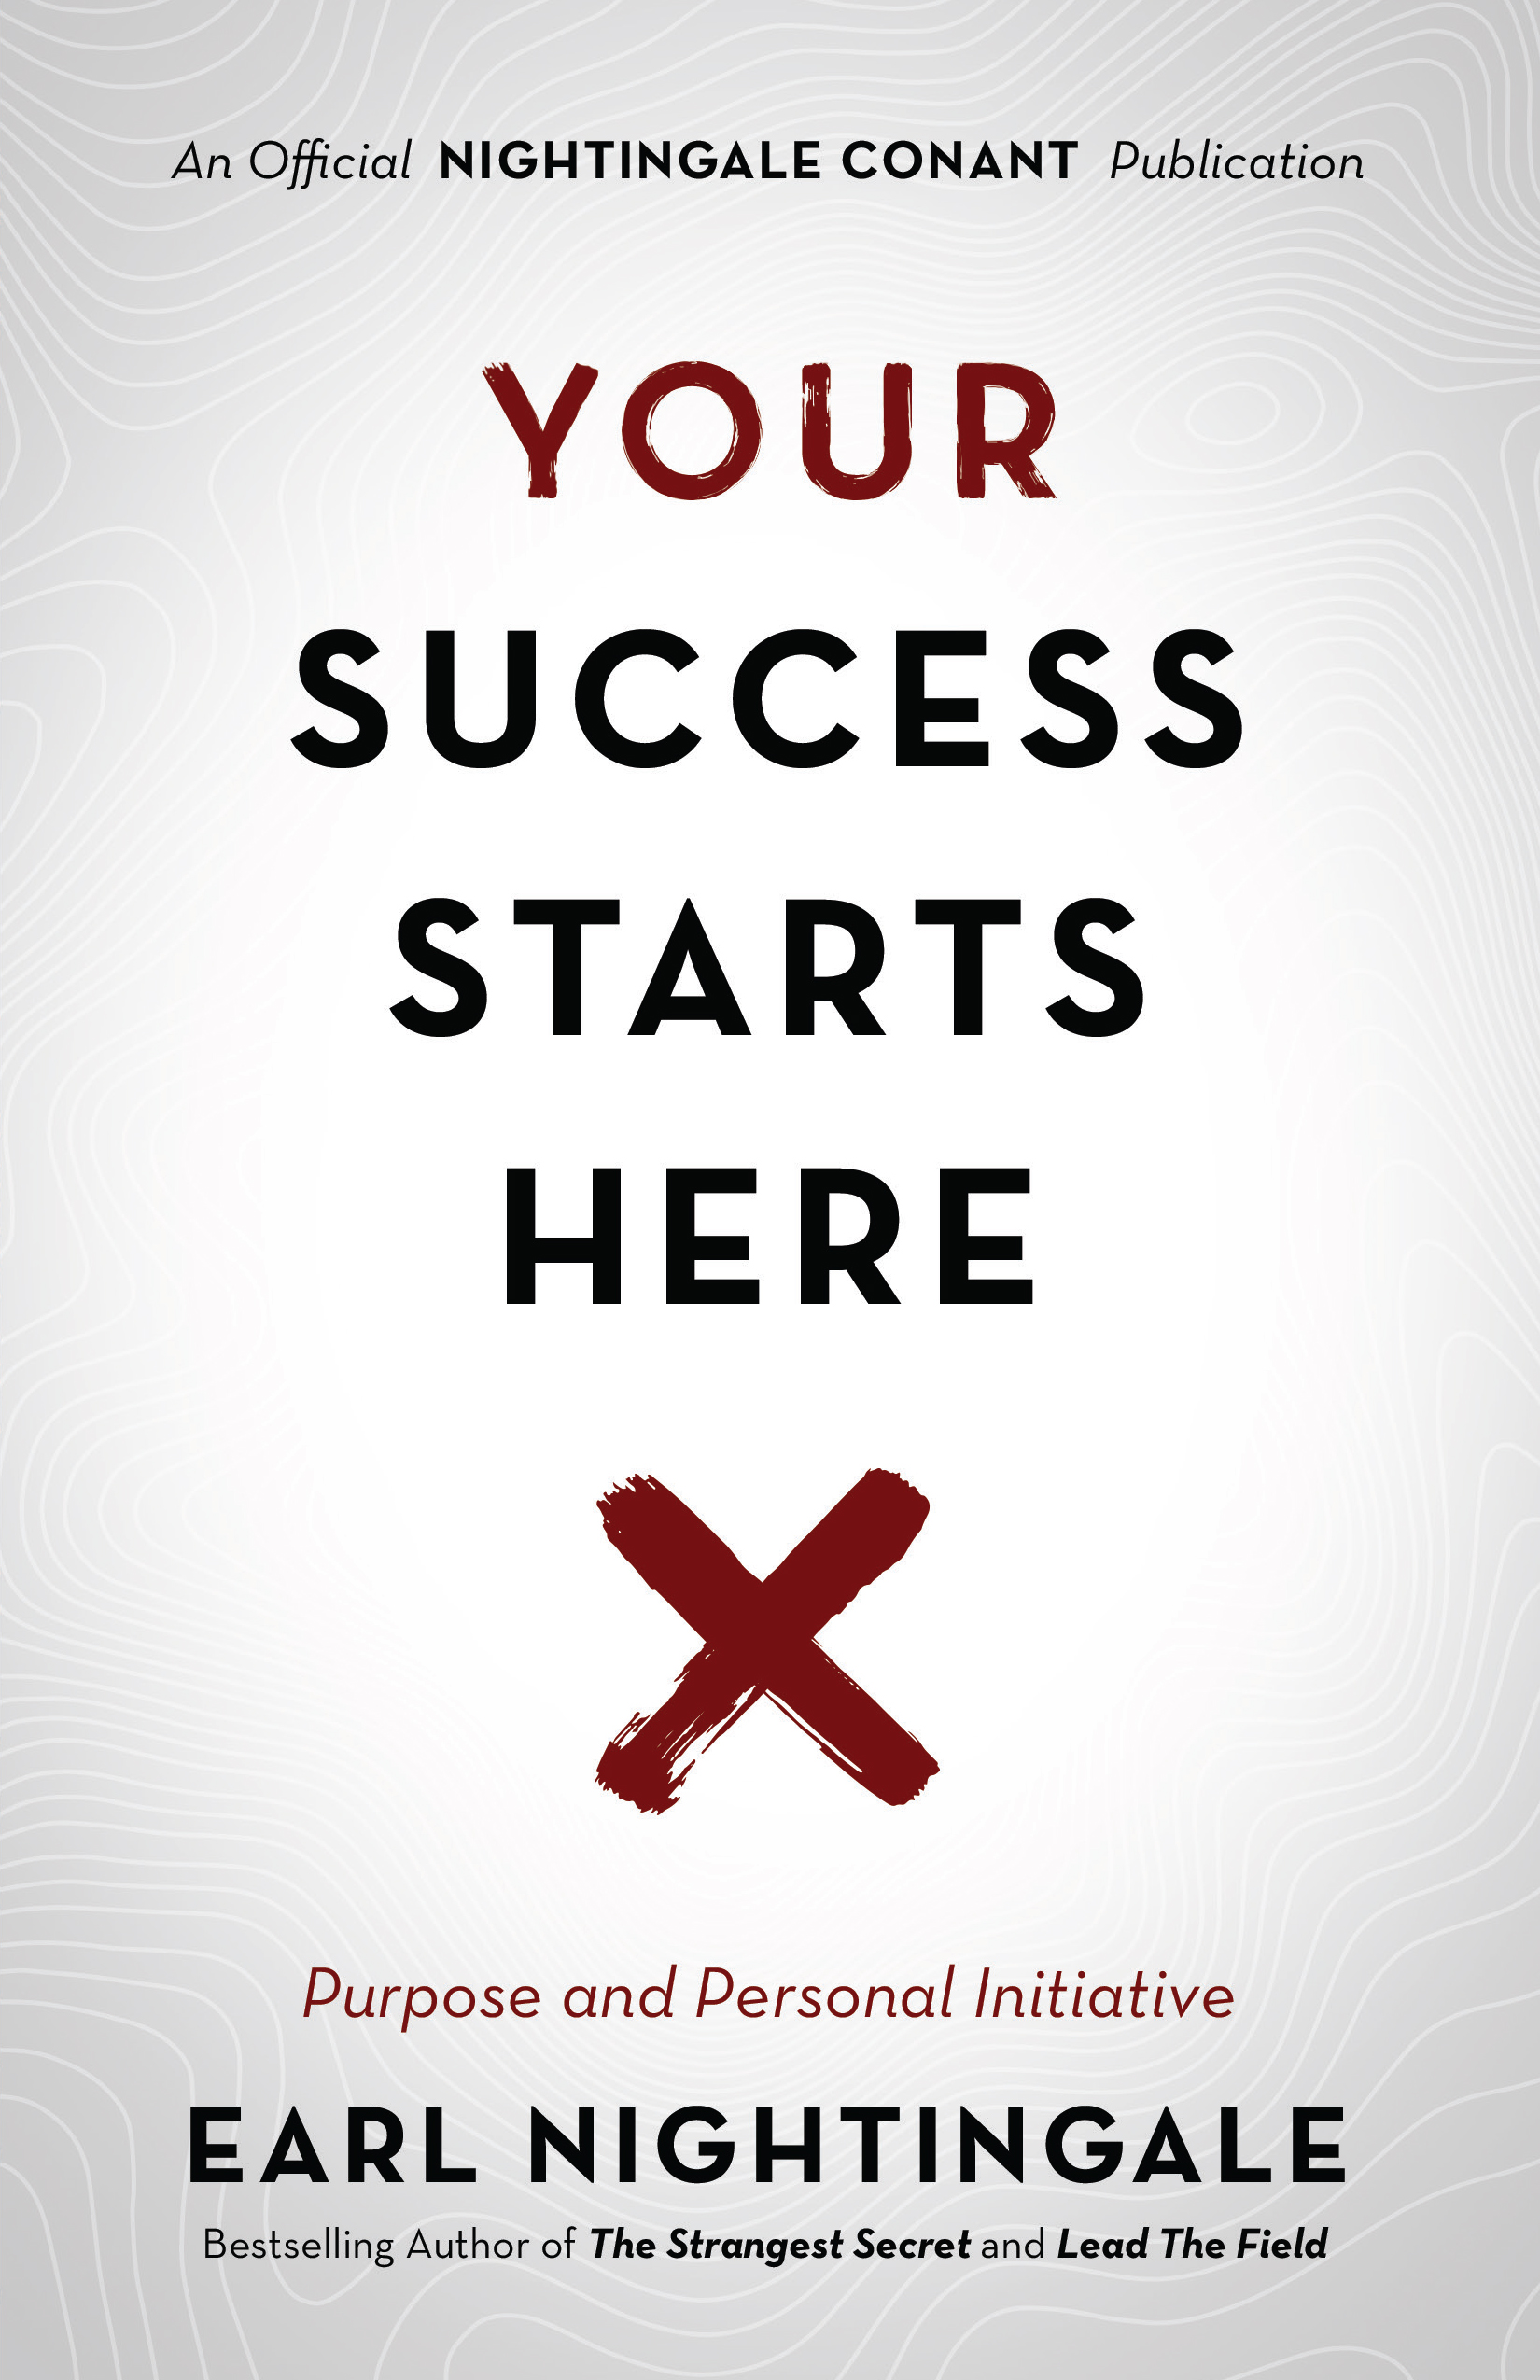 Your Success Starts Here - Earl Nightingale